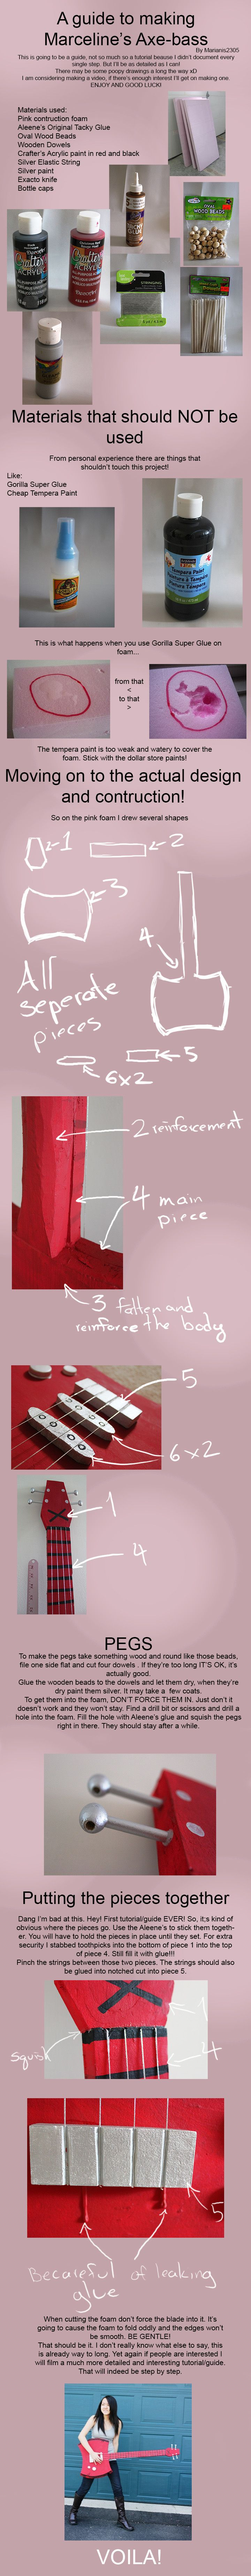 Marceline's Axe-Bass GUIDE by Marianis2305.deviantart.com on @deviantART